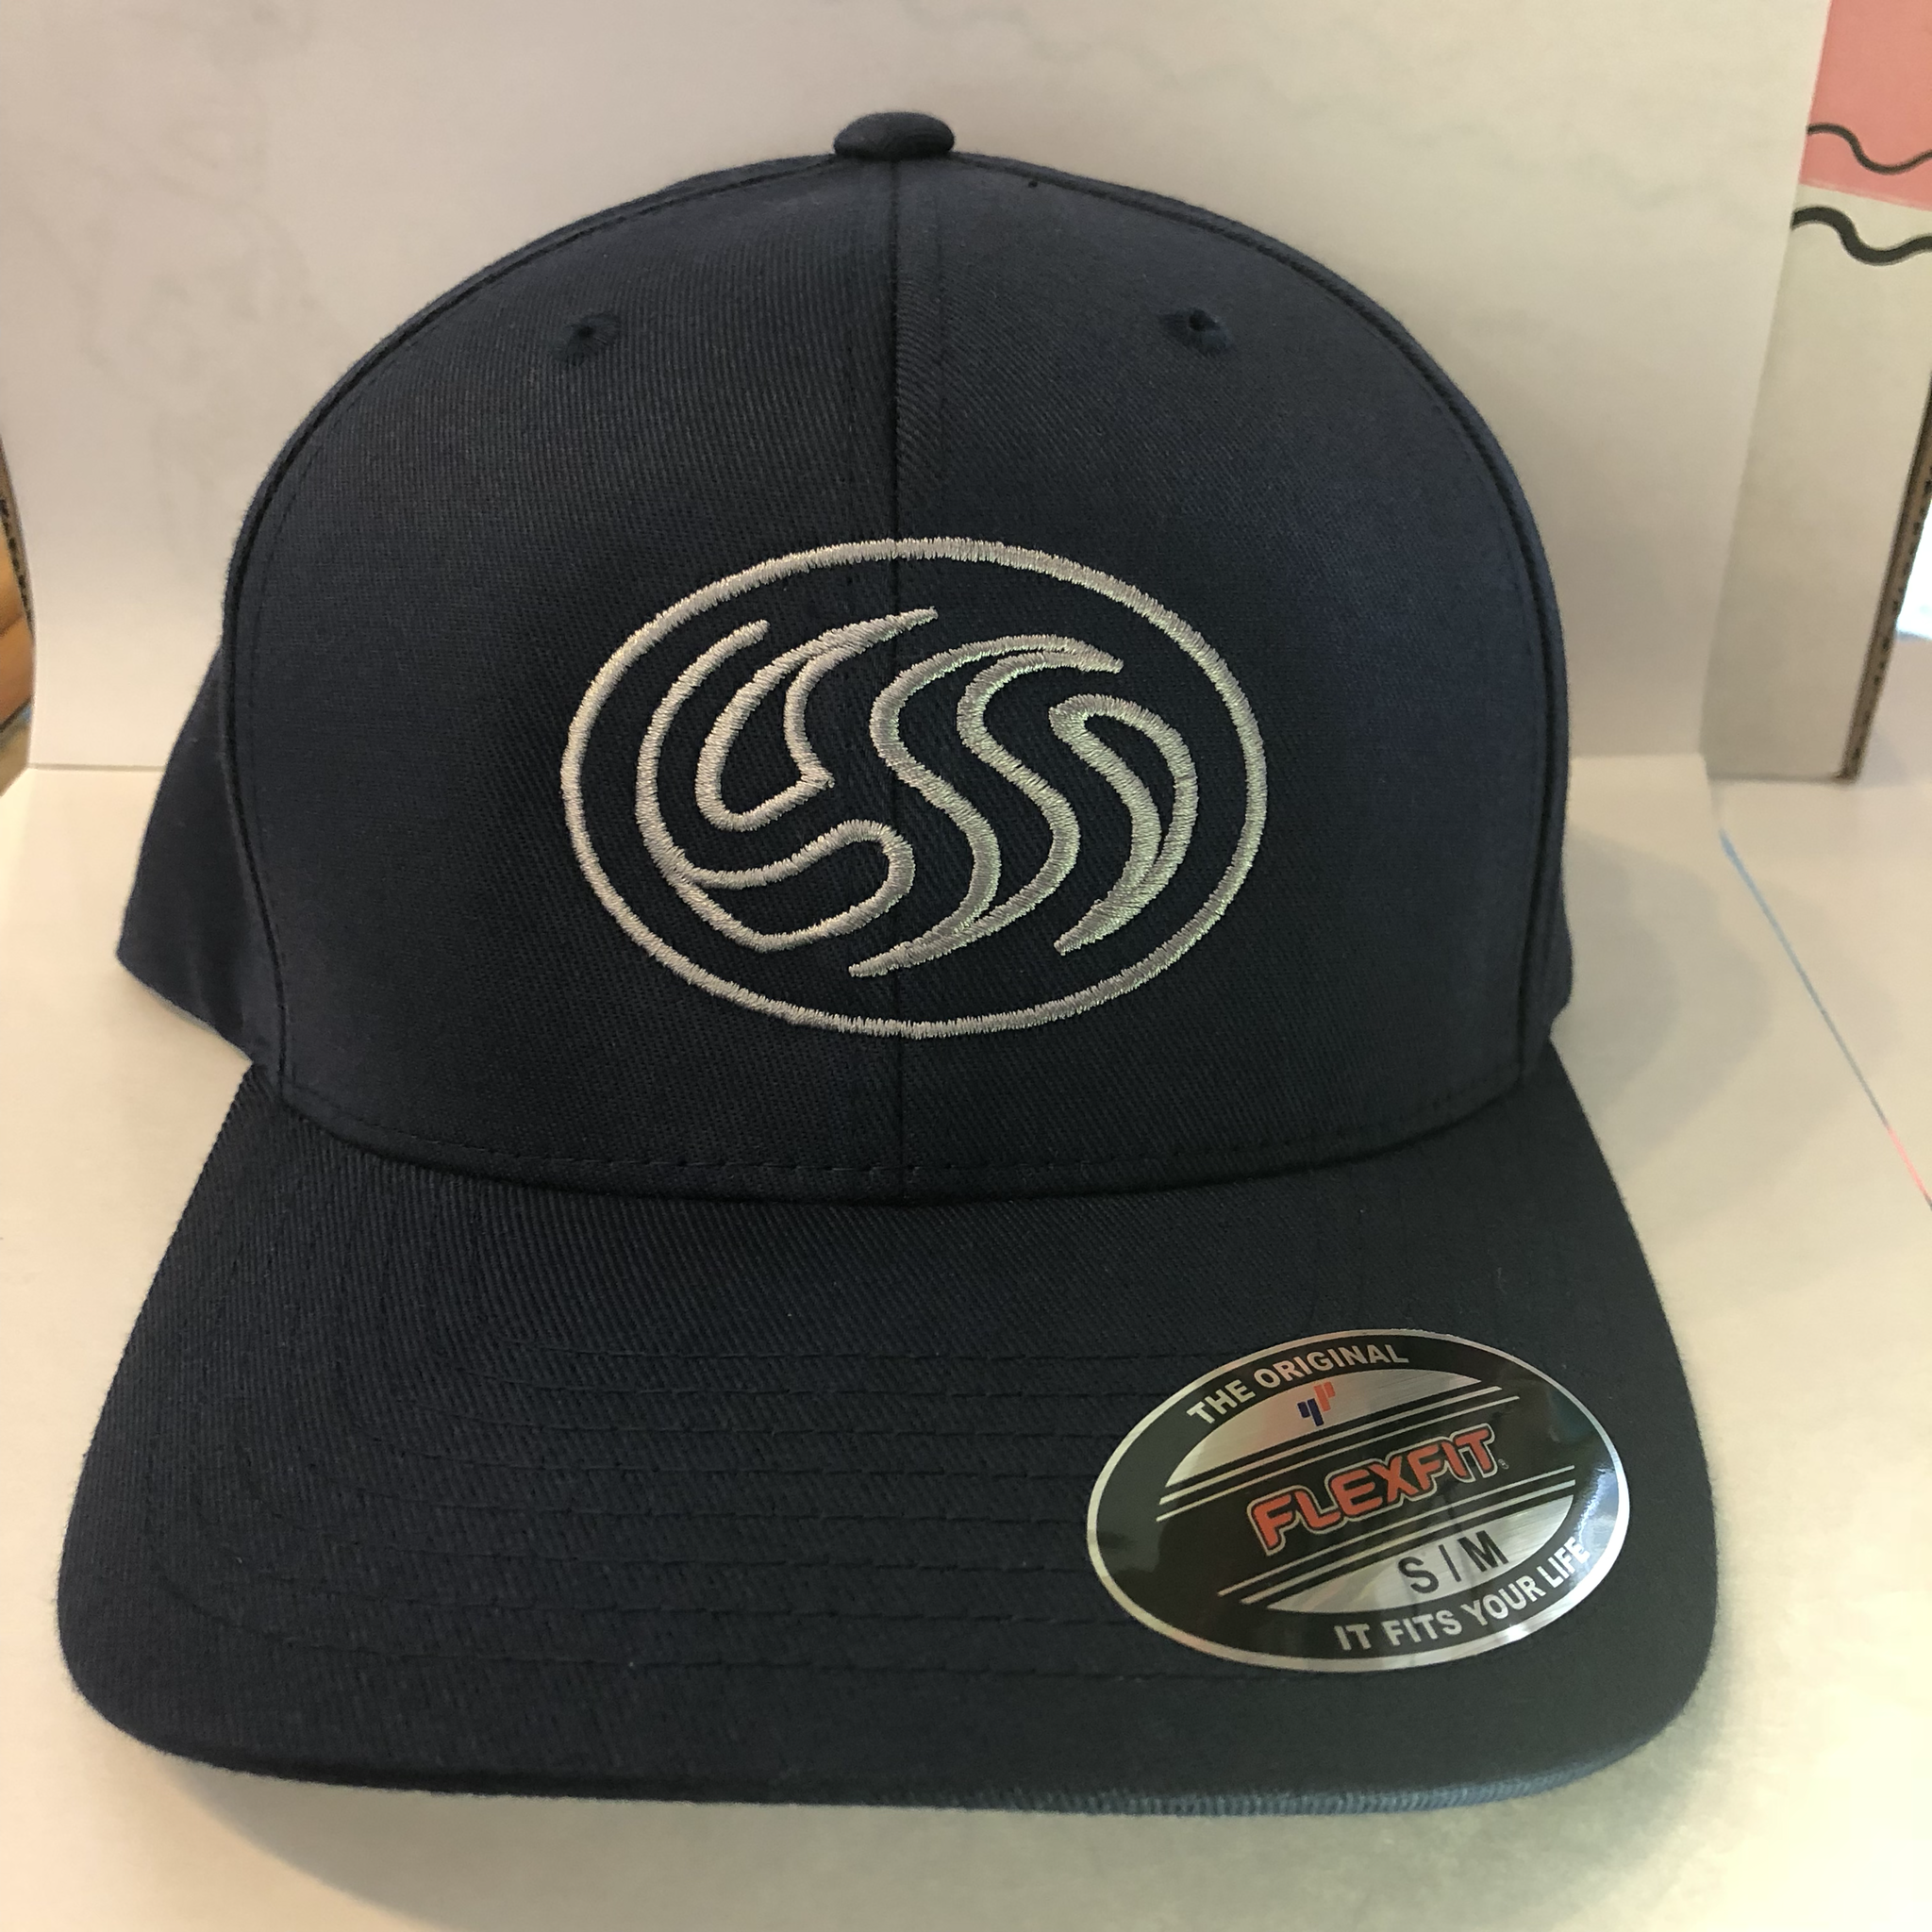 CSS Squash Flex Fit Hat (Navy) - S/M 65204